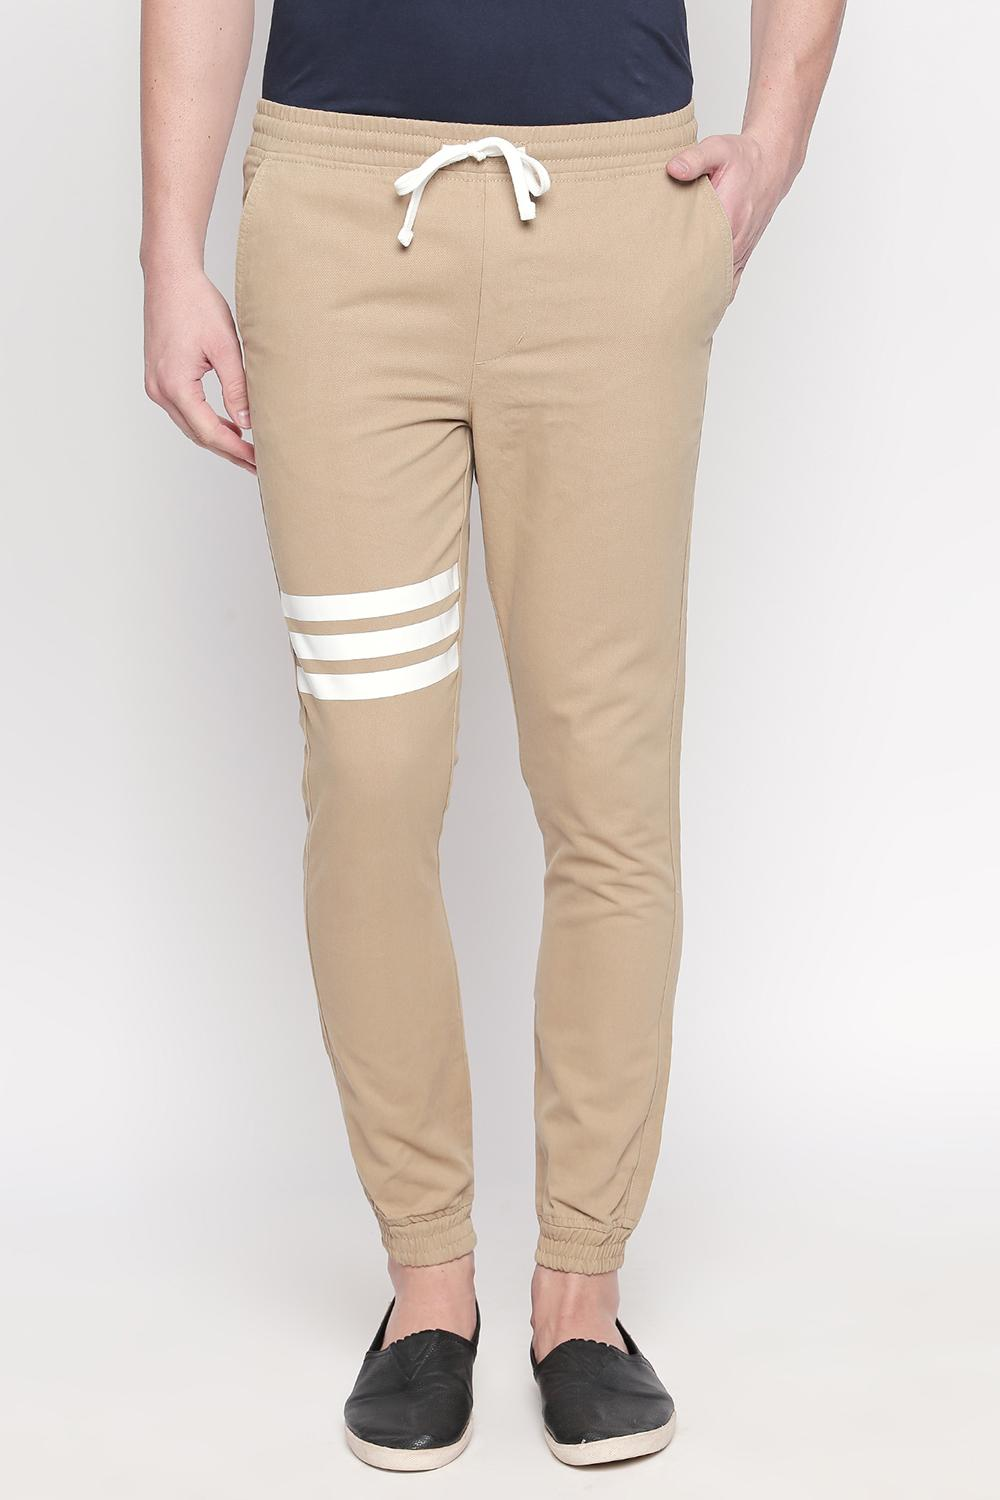 053cbac08 Buy Mens Trousers and Chinos Online in India